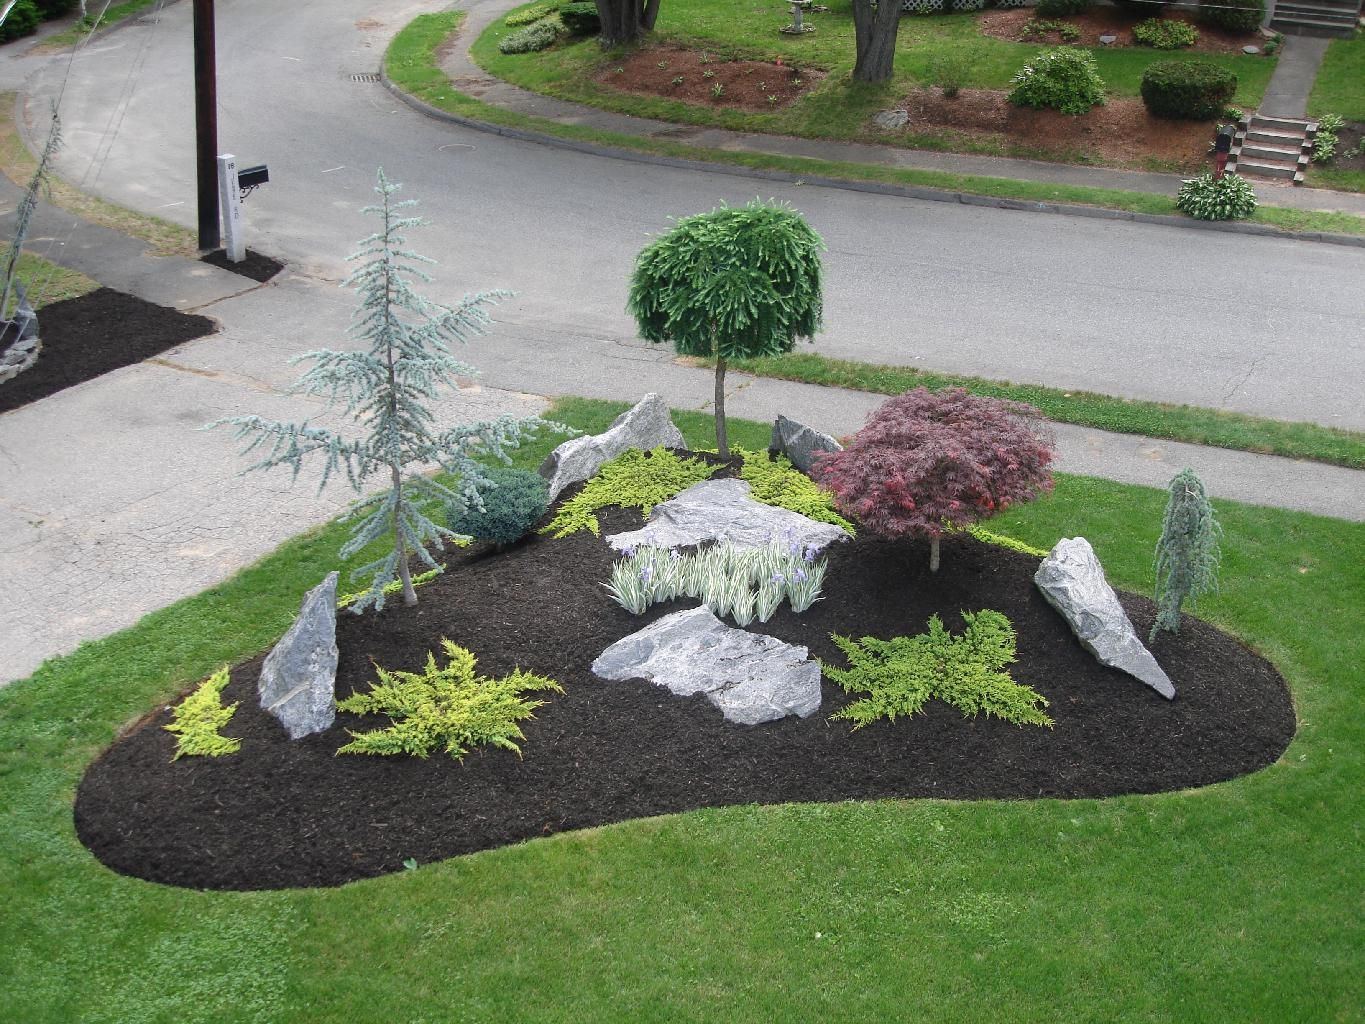 Simple landscape designs with rock beds google search for Basic landscape design